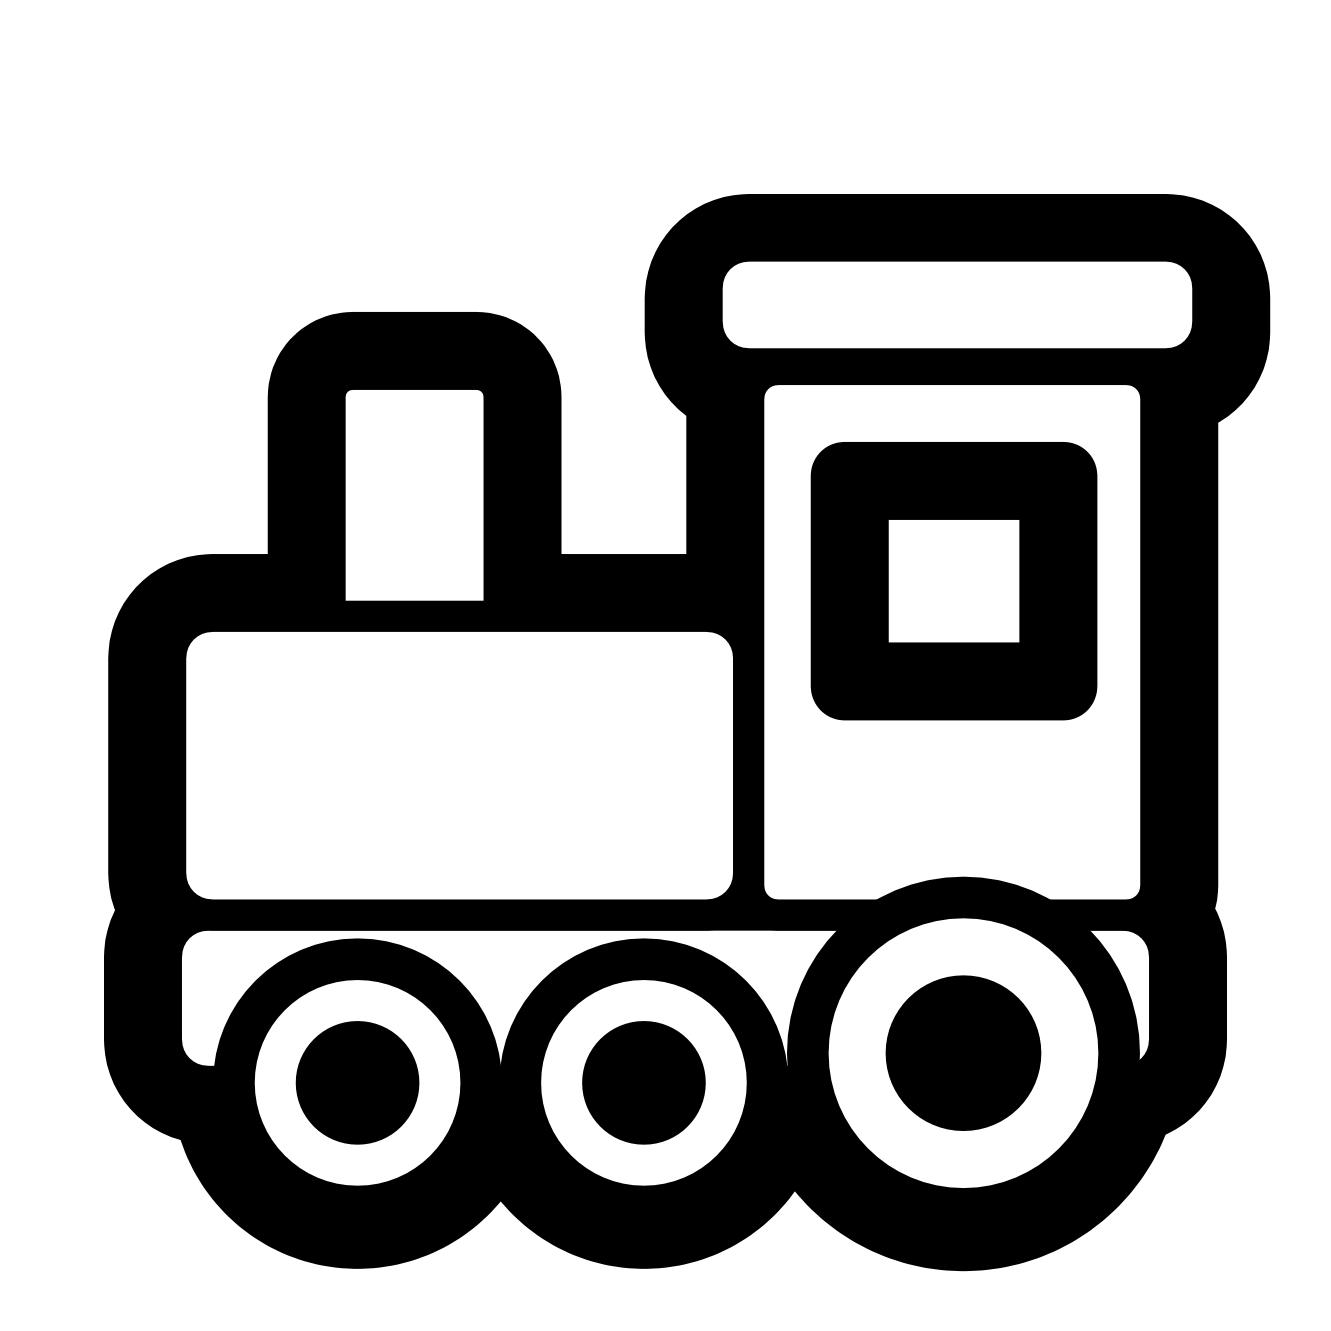 hight resolution of images for train on tracks clipart